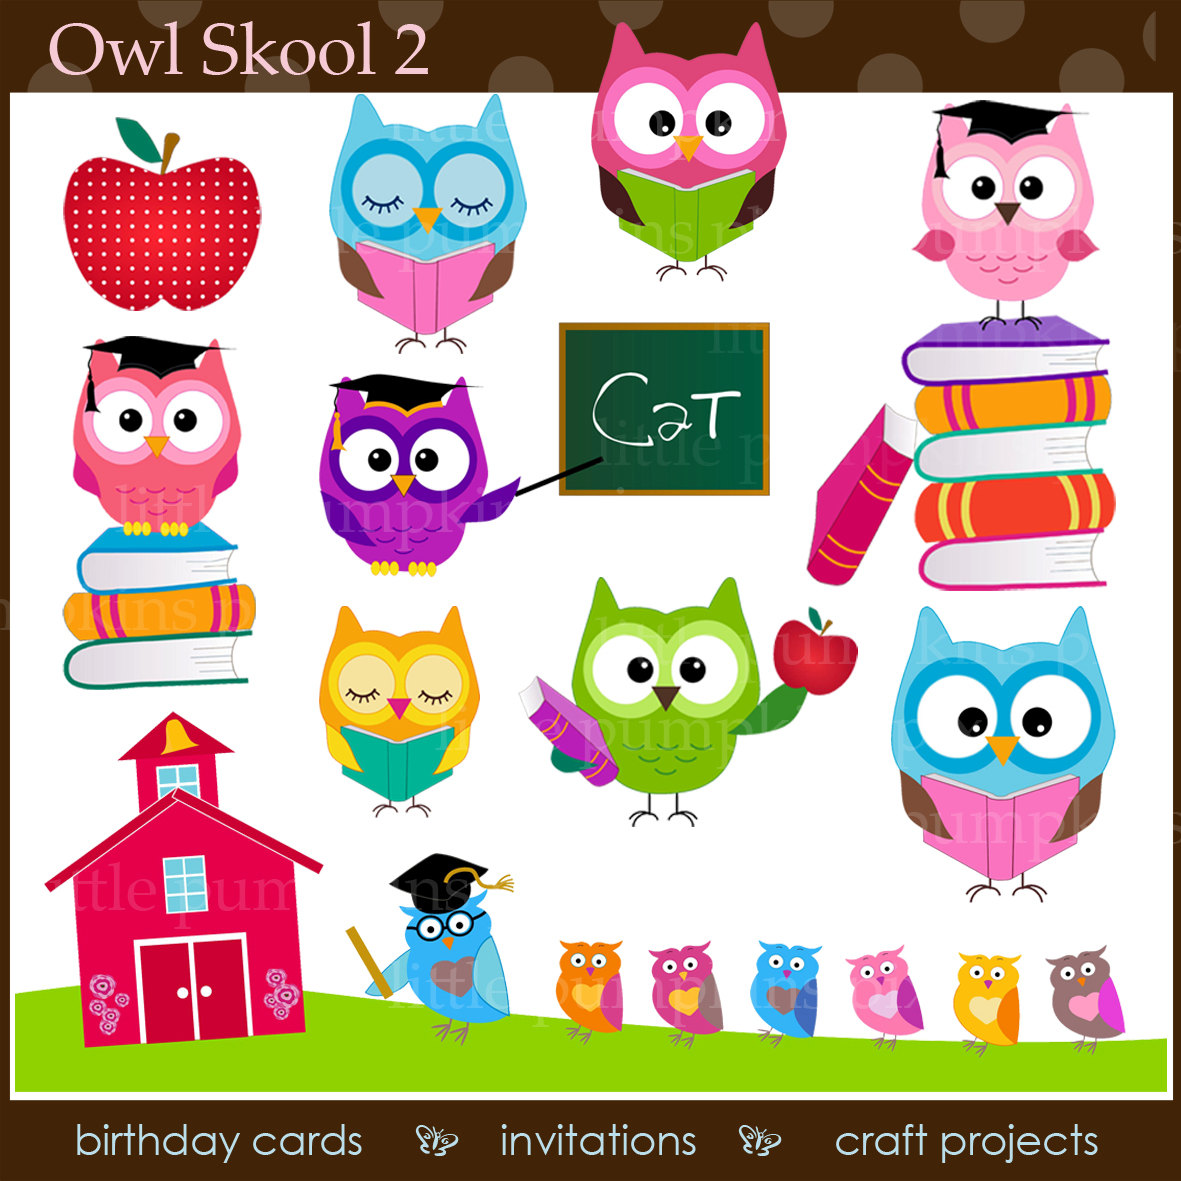 Jpeg school clipart png stock OWL School Clipart Educational Graphics School Clipart png stock